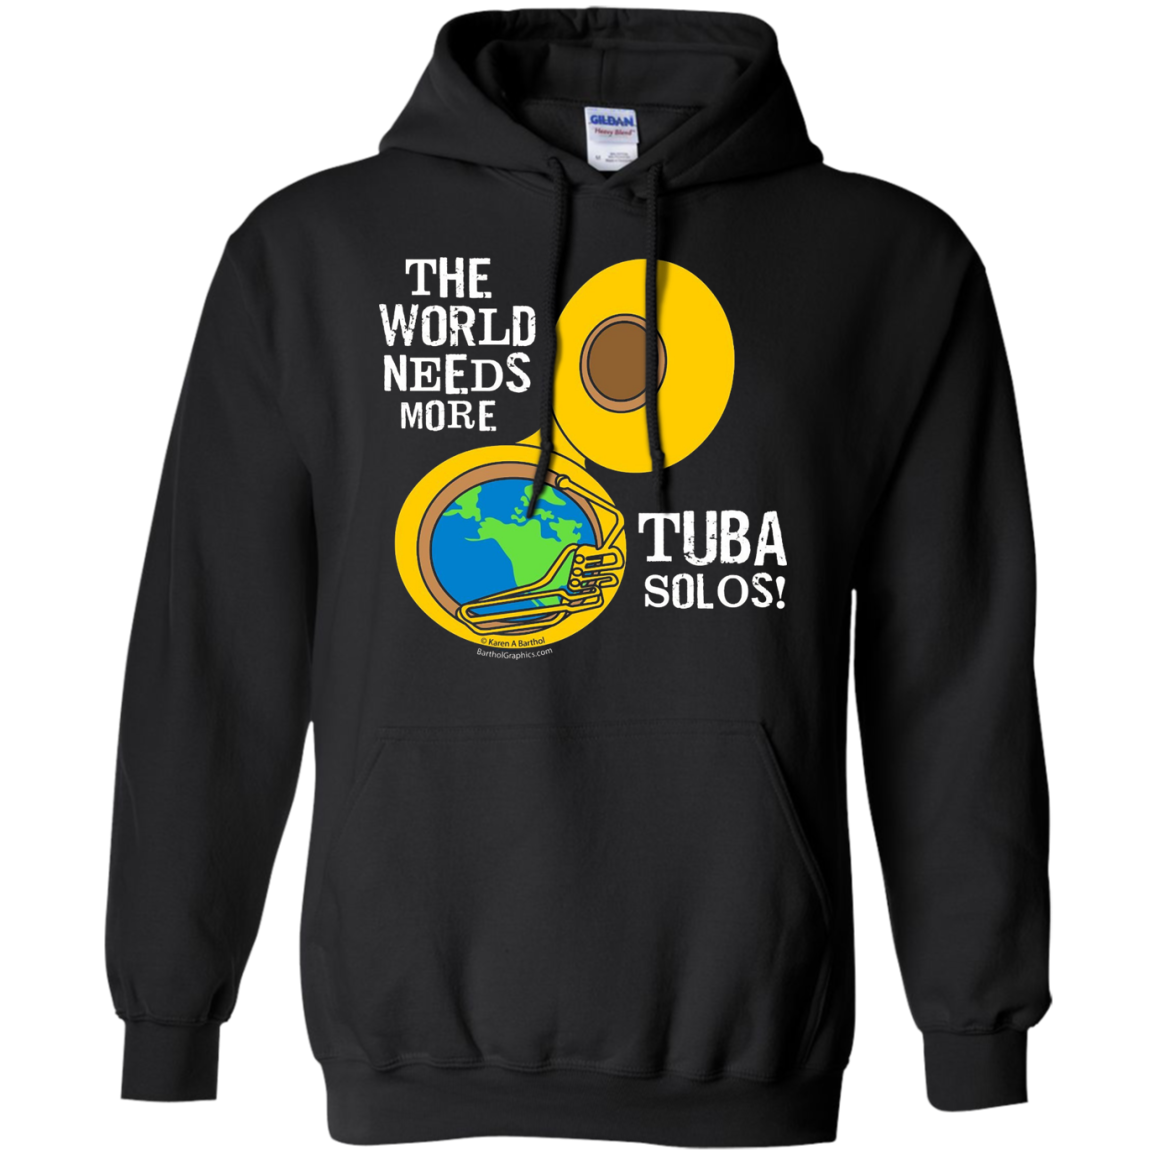 Tuba Solos Funny Musical Instrument T Shirt In White Text